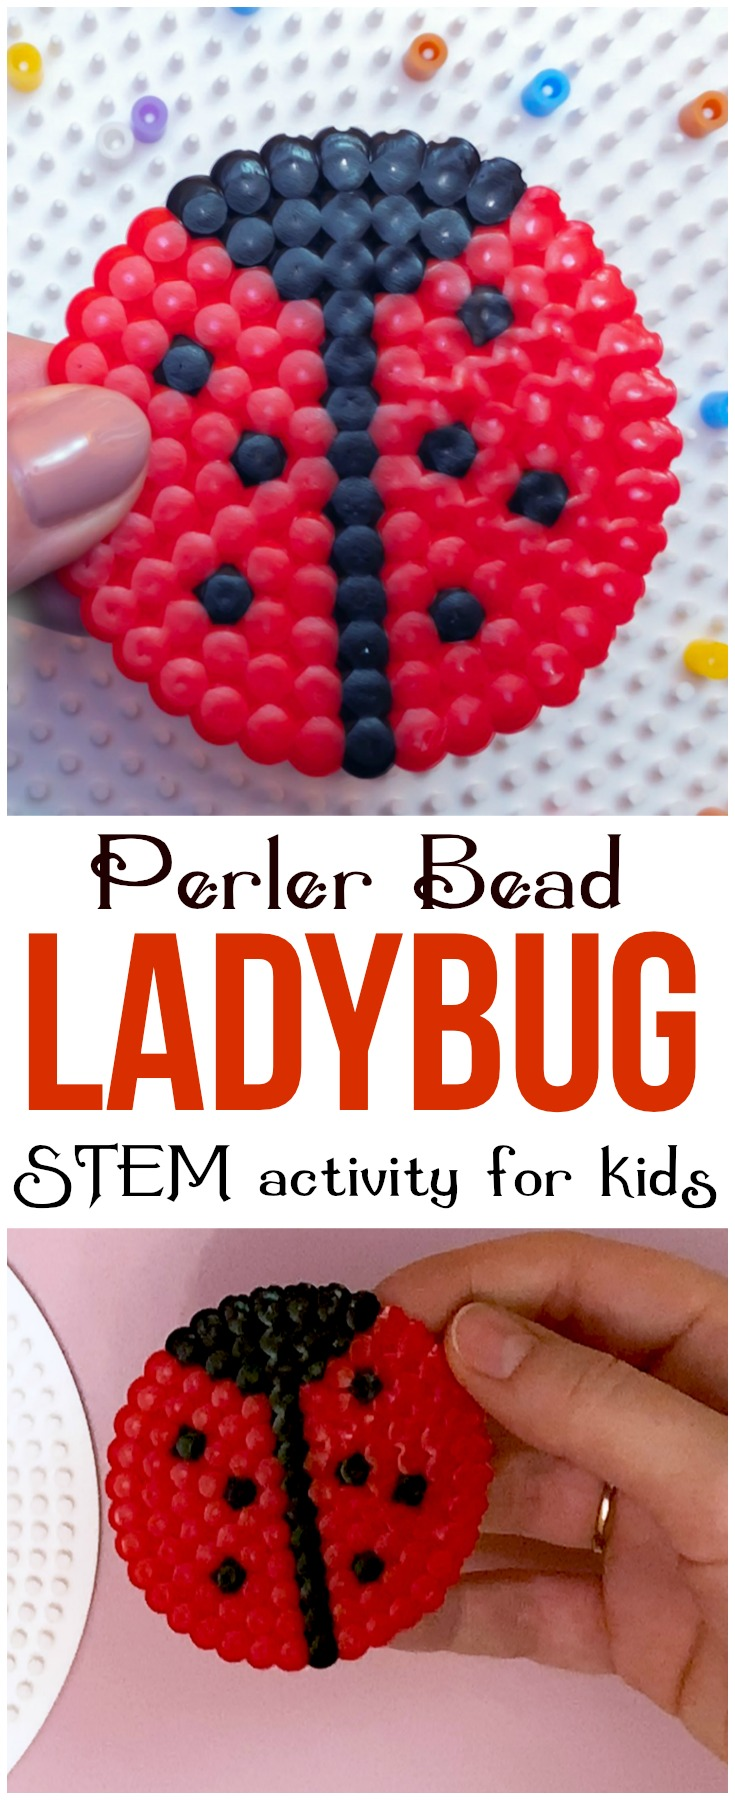 This perler bead ladybug is a fun and adorable project that will help kids develop fine motor skills, patience and artistic design! #perler #perlerbead #STEM #STEAM #kids #craft #motorskills #spring #ladybug